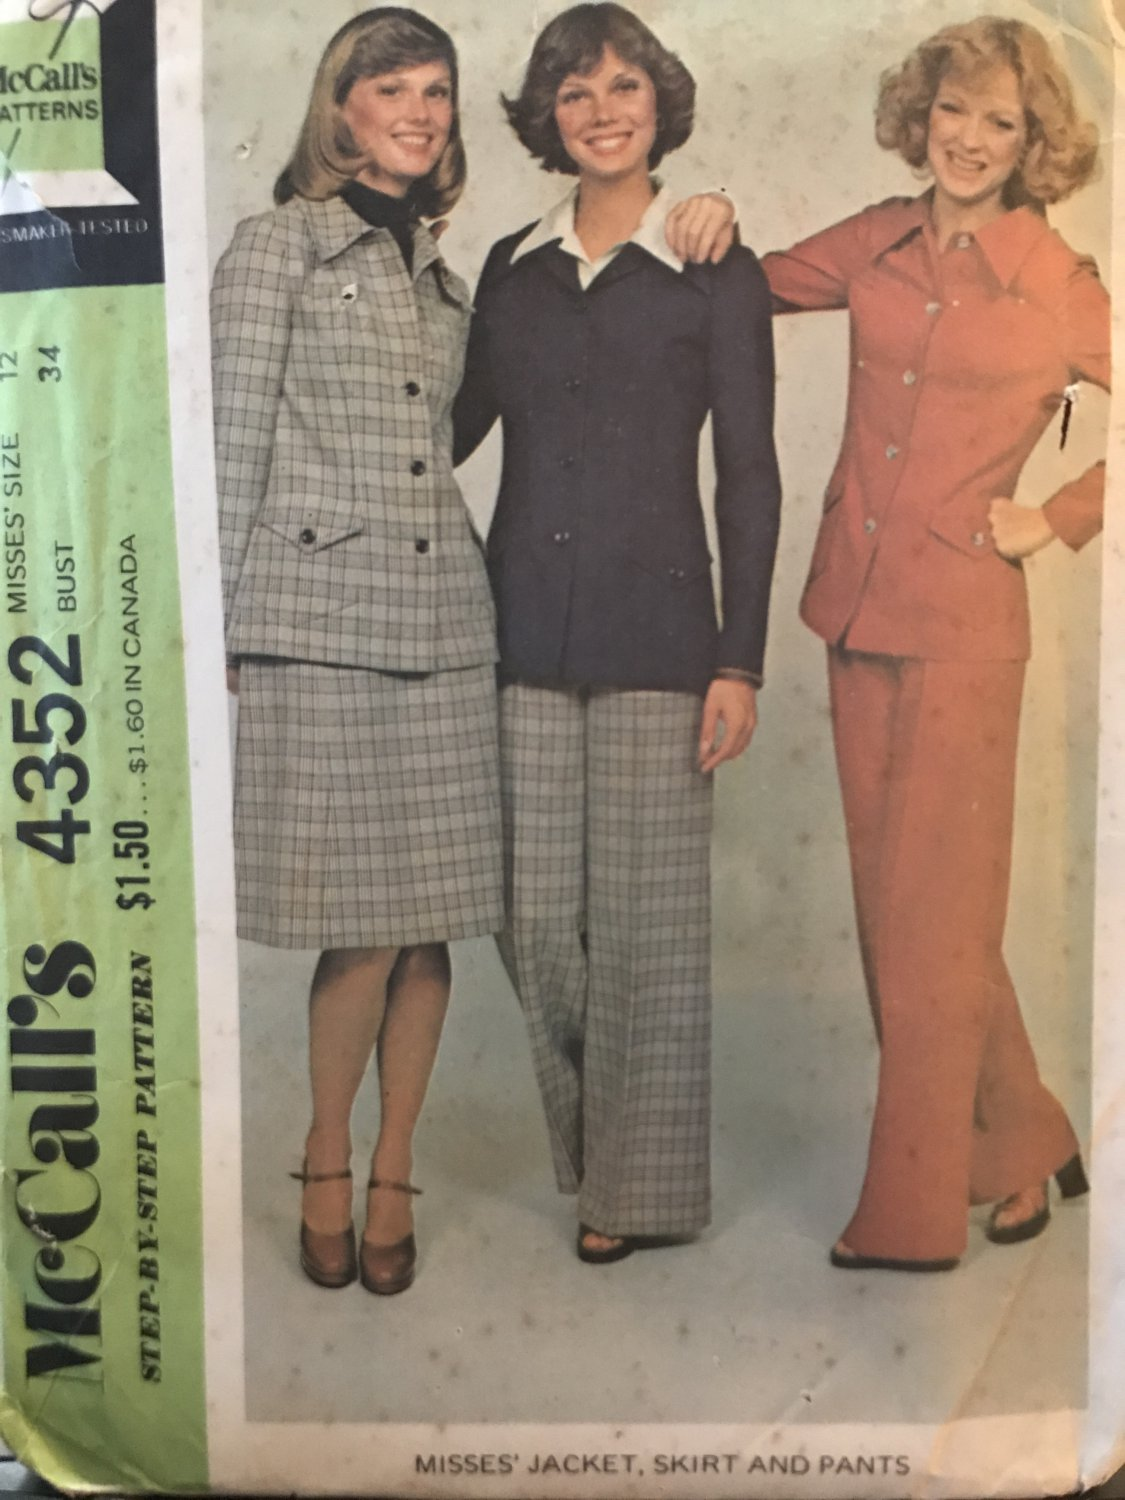 McCall's 4352 Misses Vintage Jacket, Skirt and Pants Suit Pattern, size 12